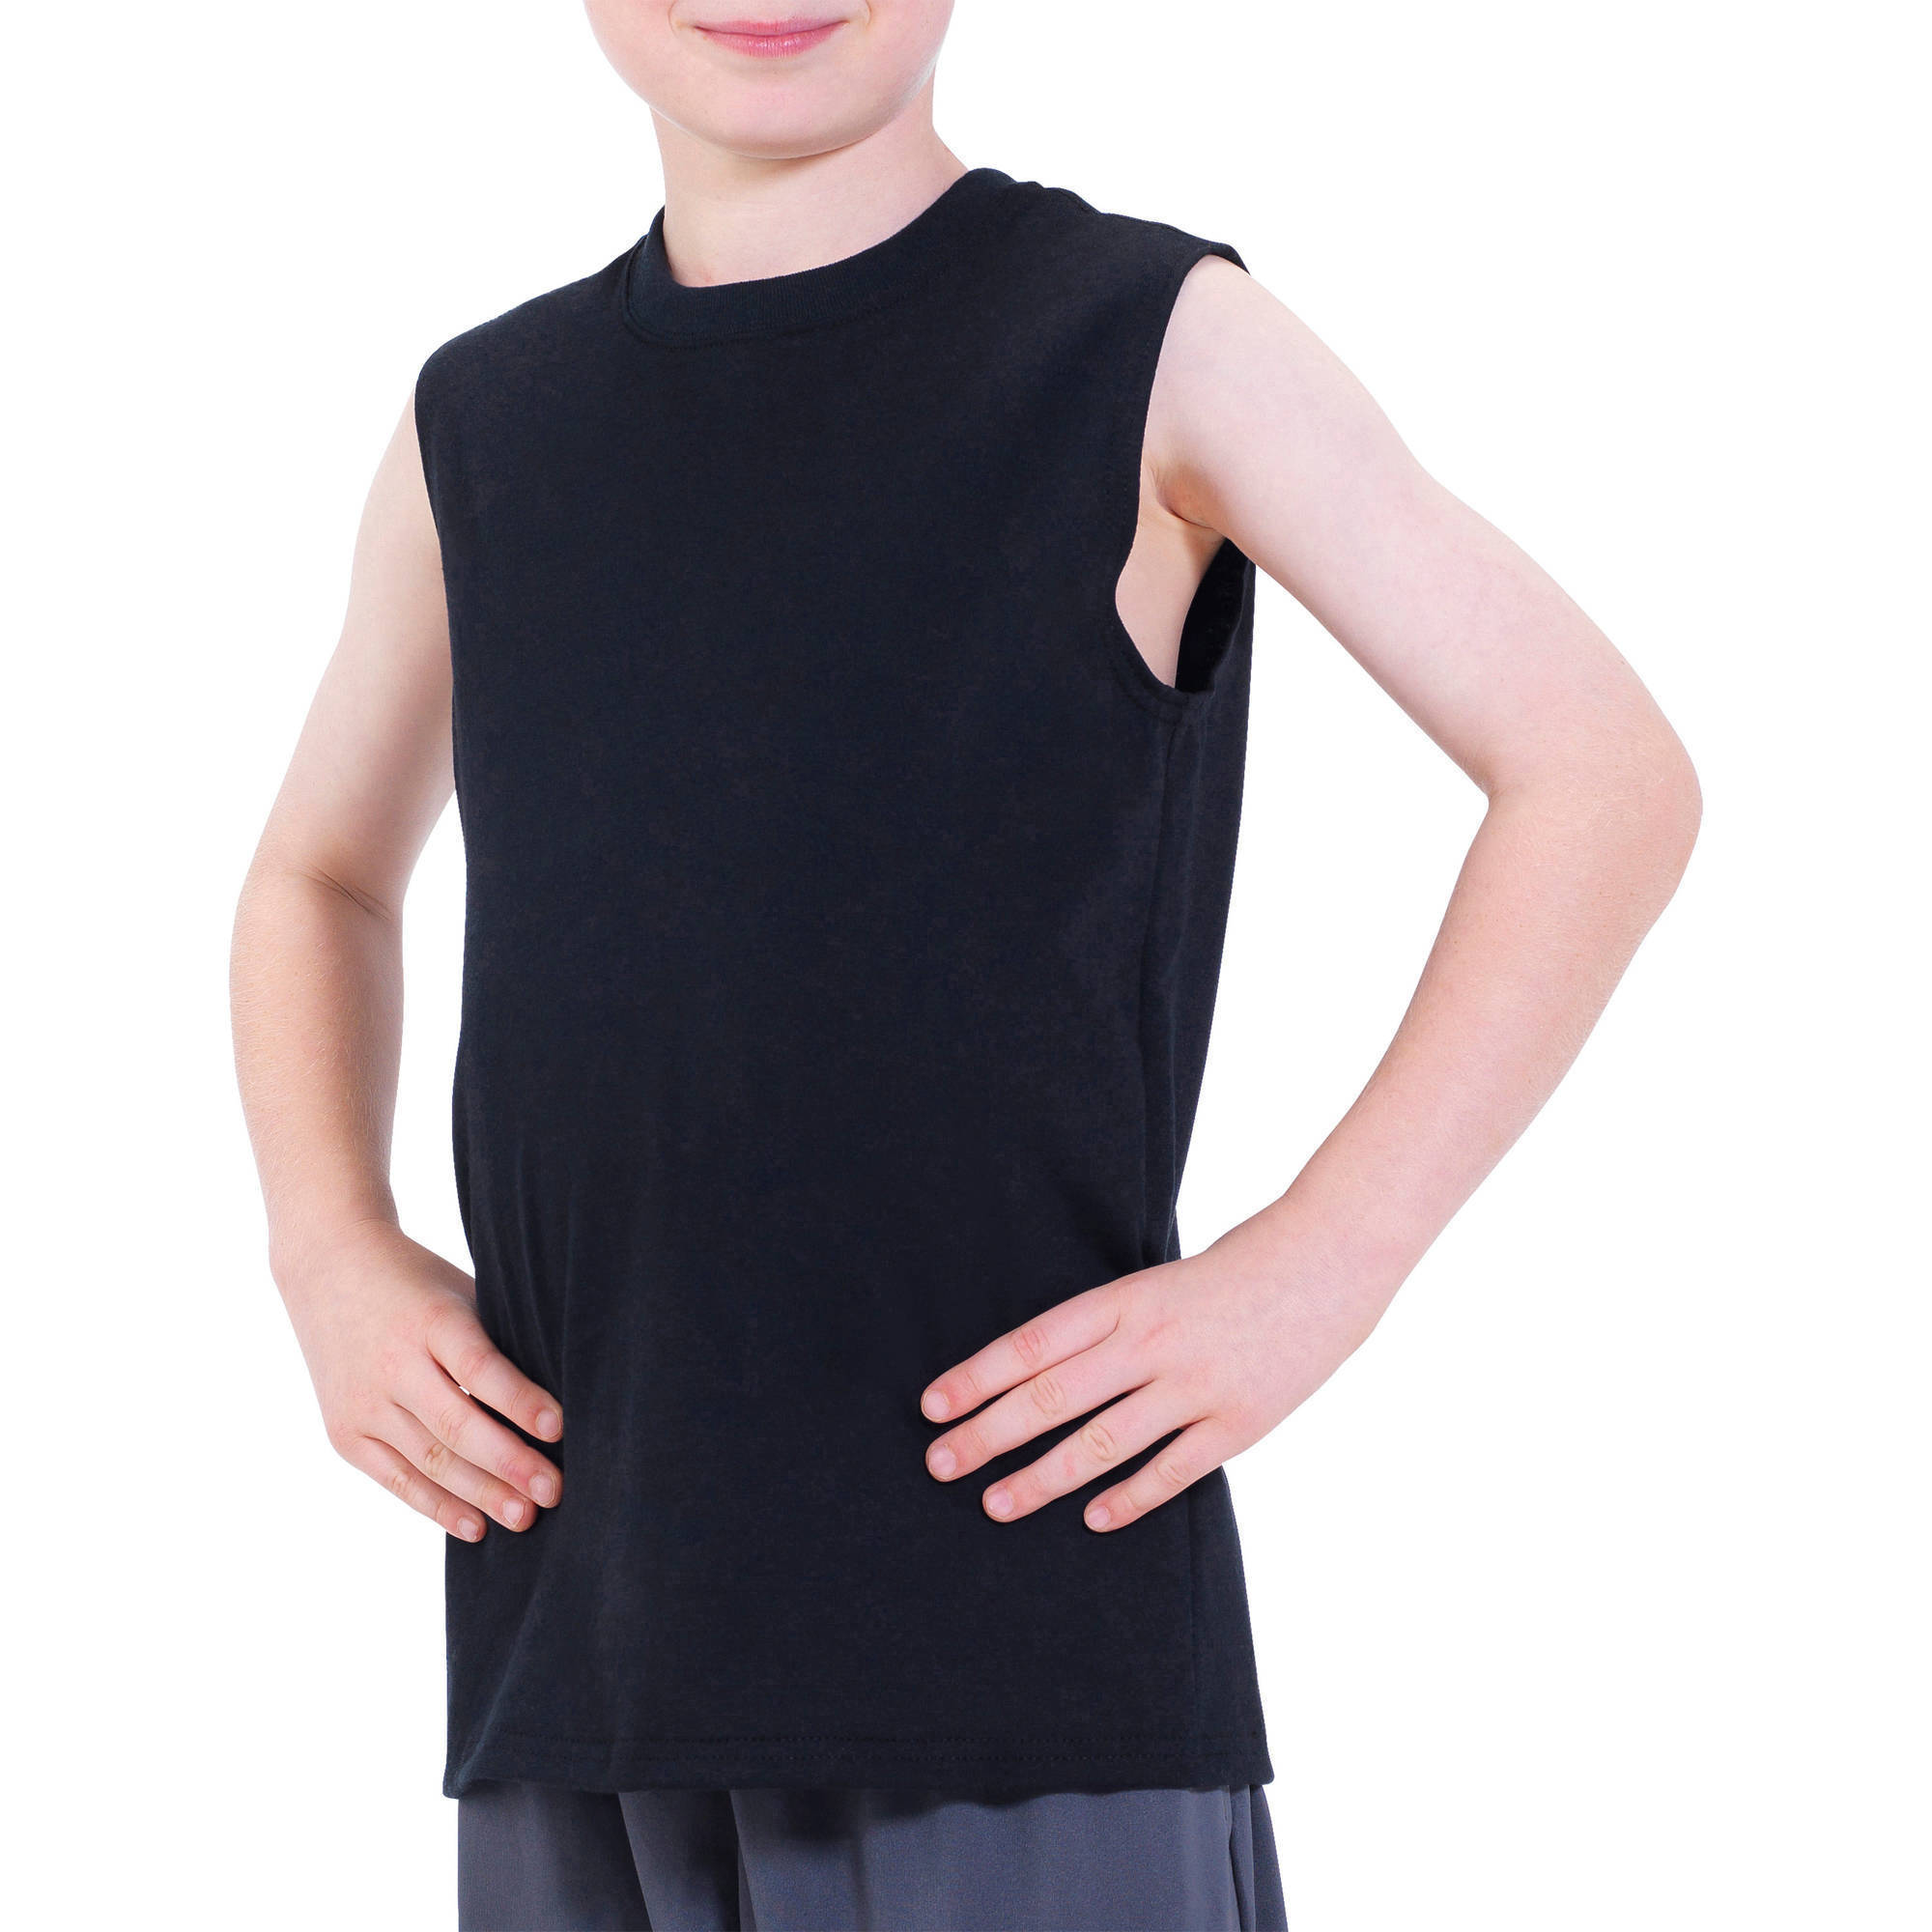 Fruit of the Loom Boys' Sleeveless Tee